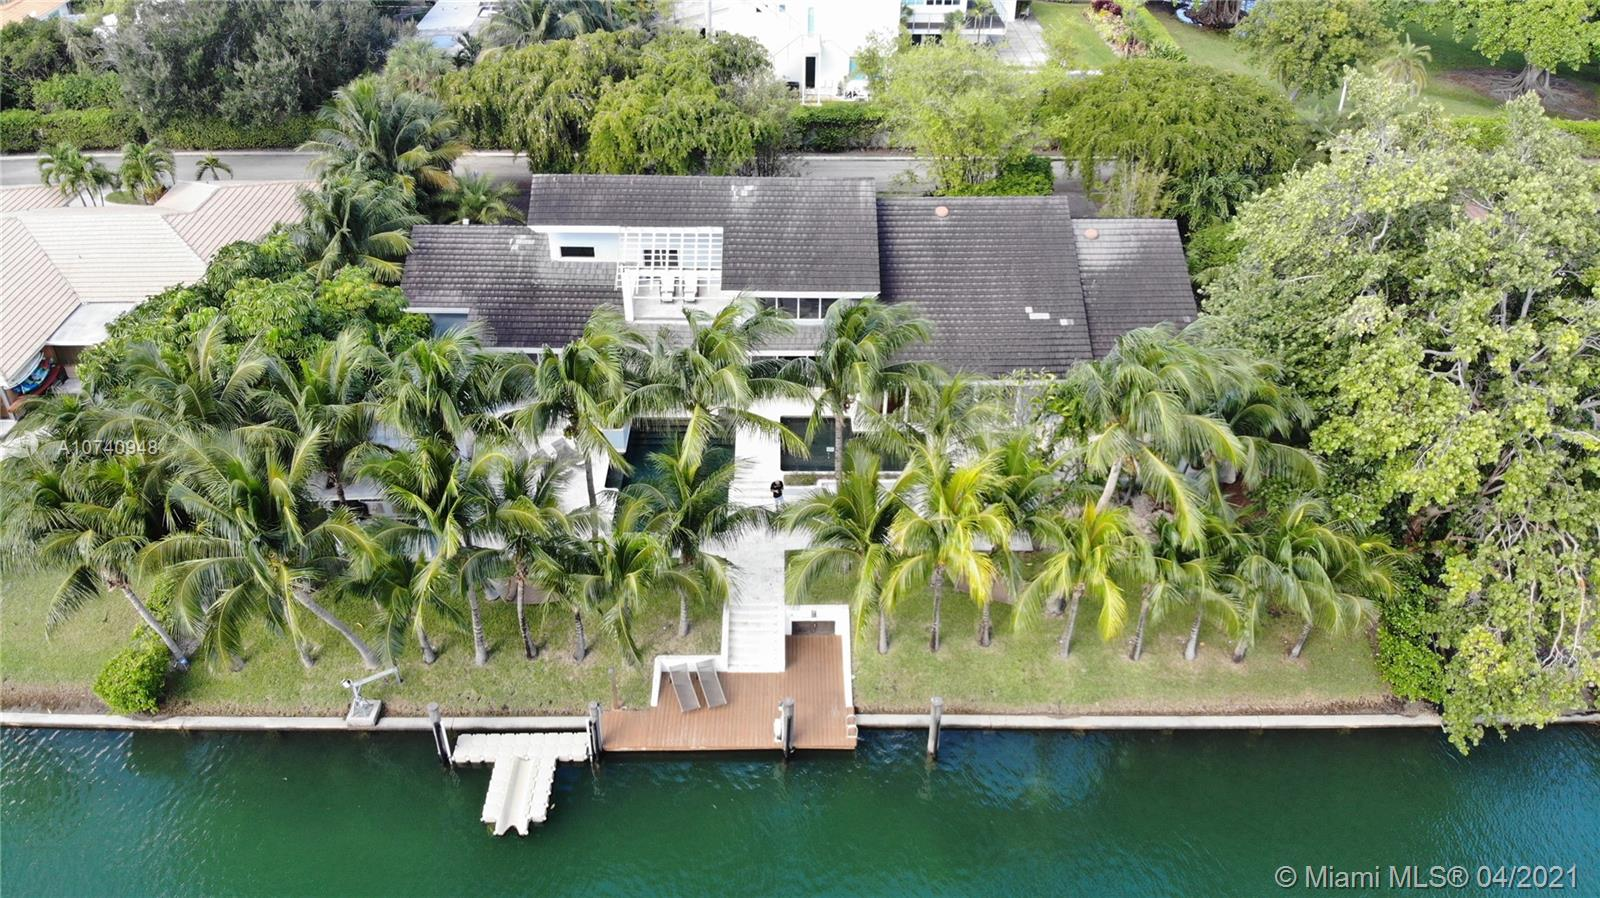 700 Lake Rd, Miami, Florida 33137, 6 Bedrooms Bedrooms, ,7 BathroomsBathrooms,Residential,For Sale,700 Lake Rd,A10740948